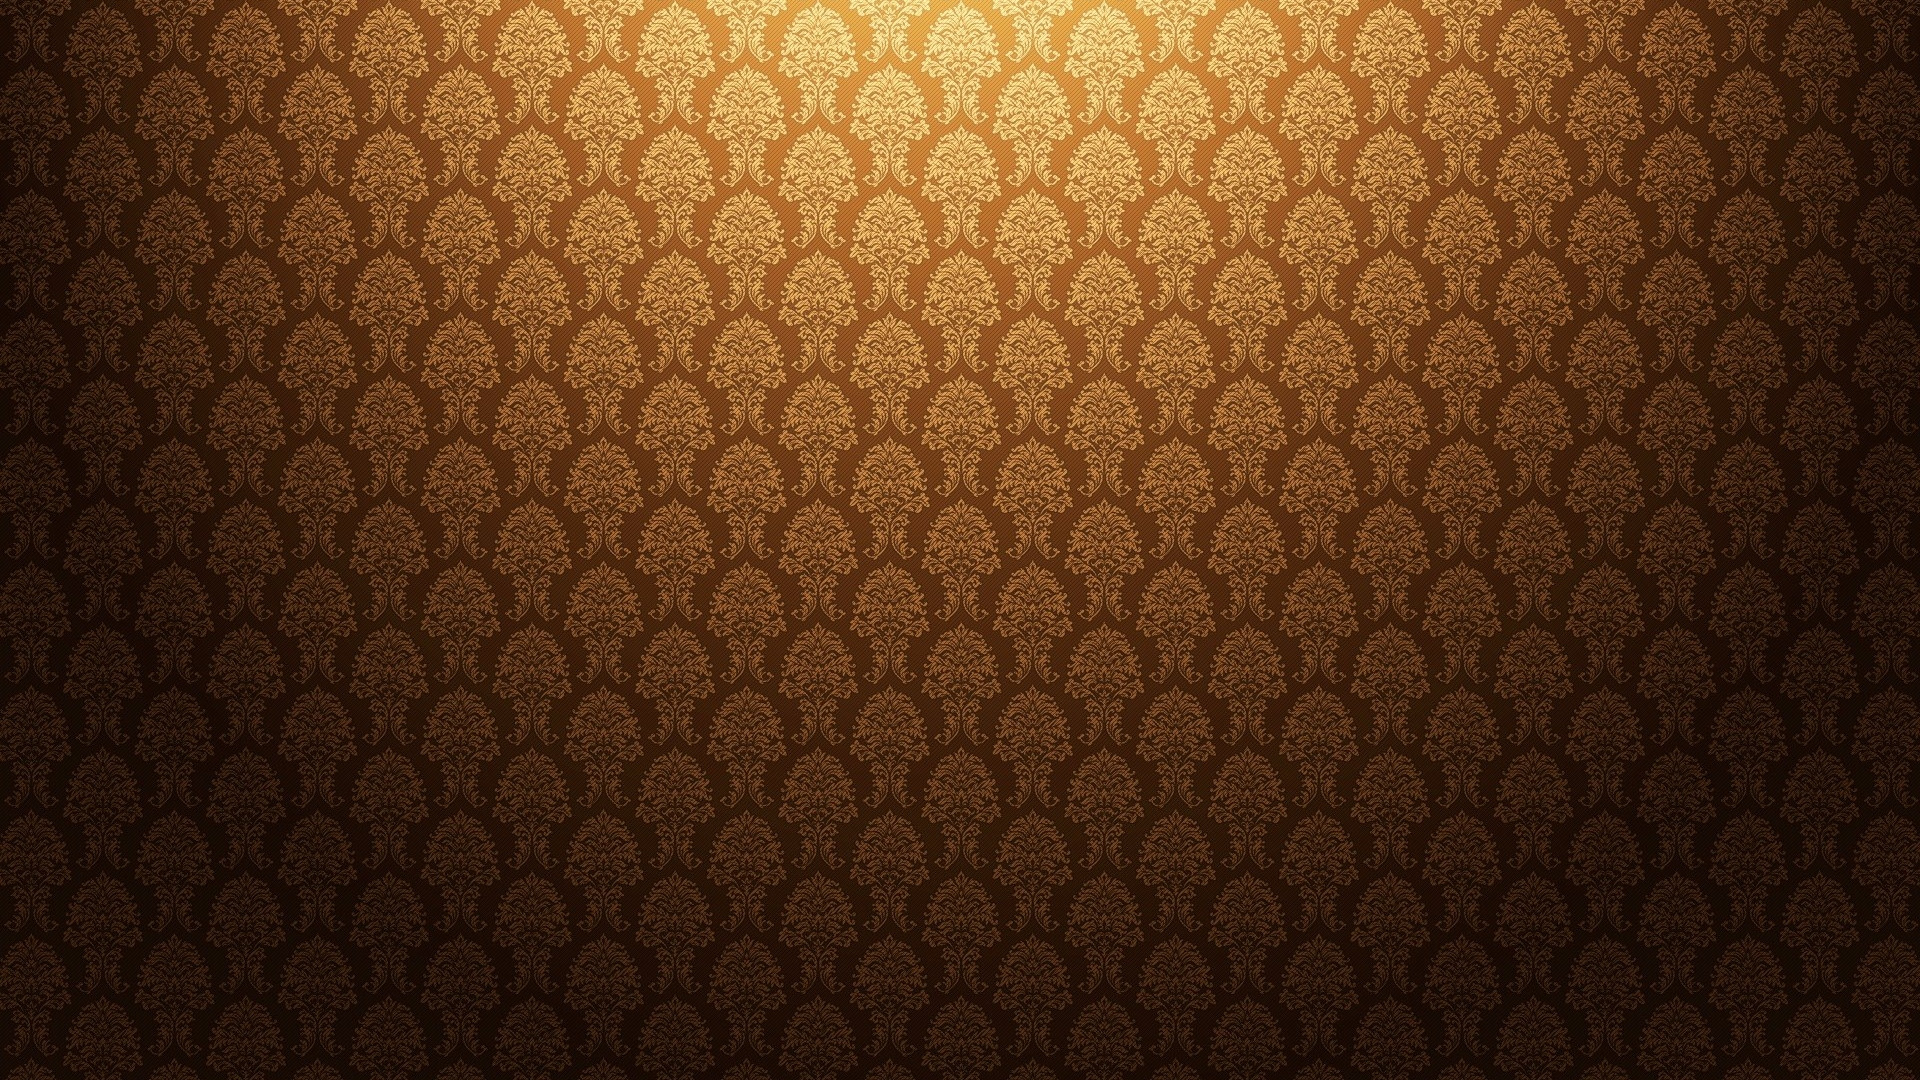 50 HD Retro Wallpapers 1920x1080